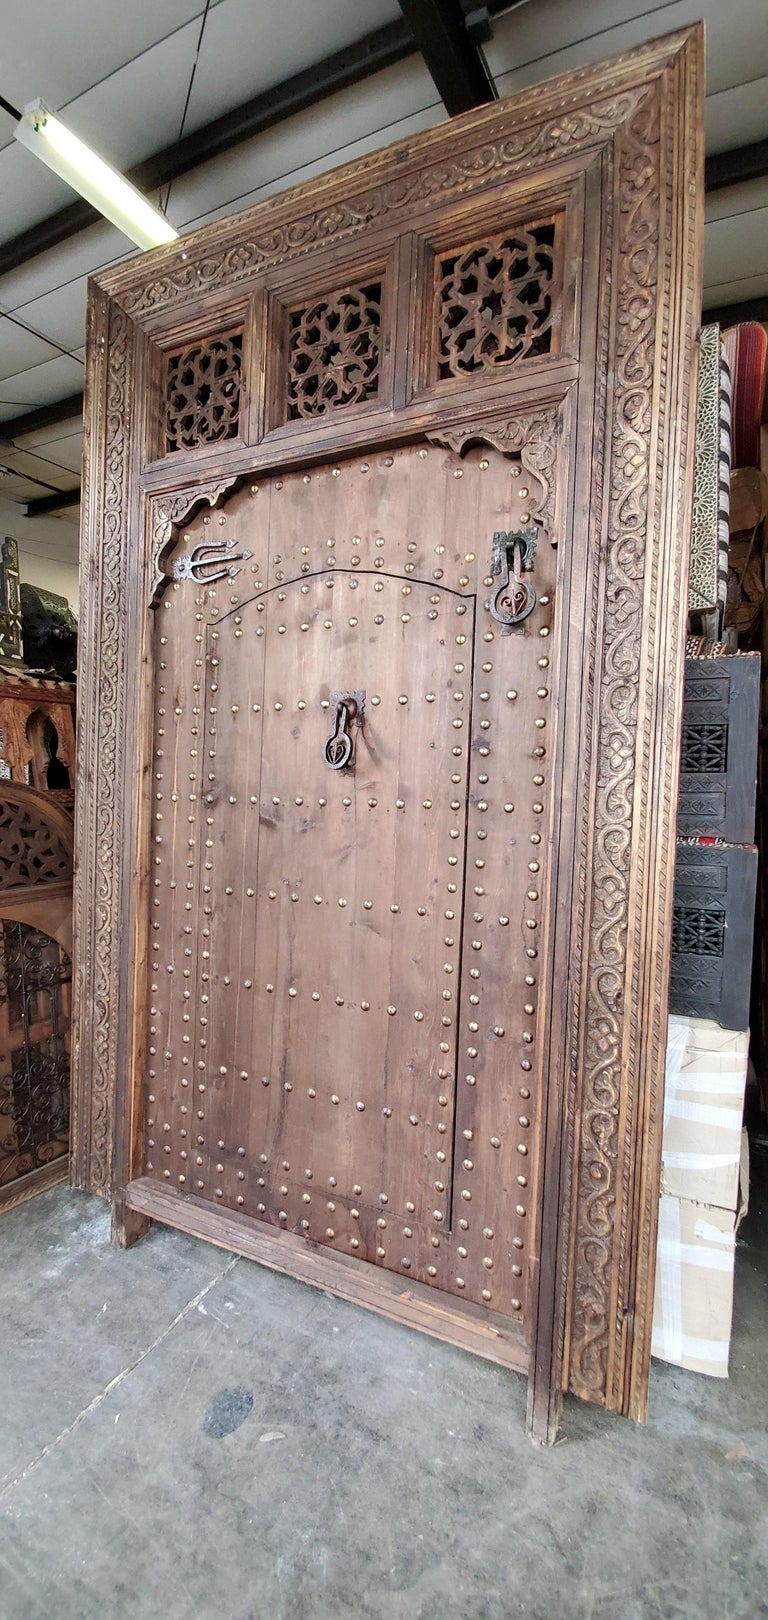 Superb Vintage Handmade Moorish Carved Door Within a Door In Excellent Condition For Sale In West Palm Beach, FL